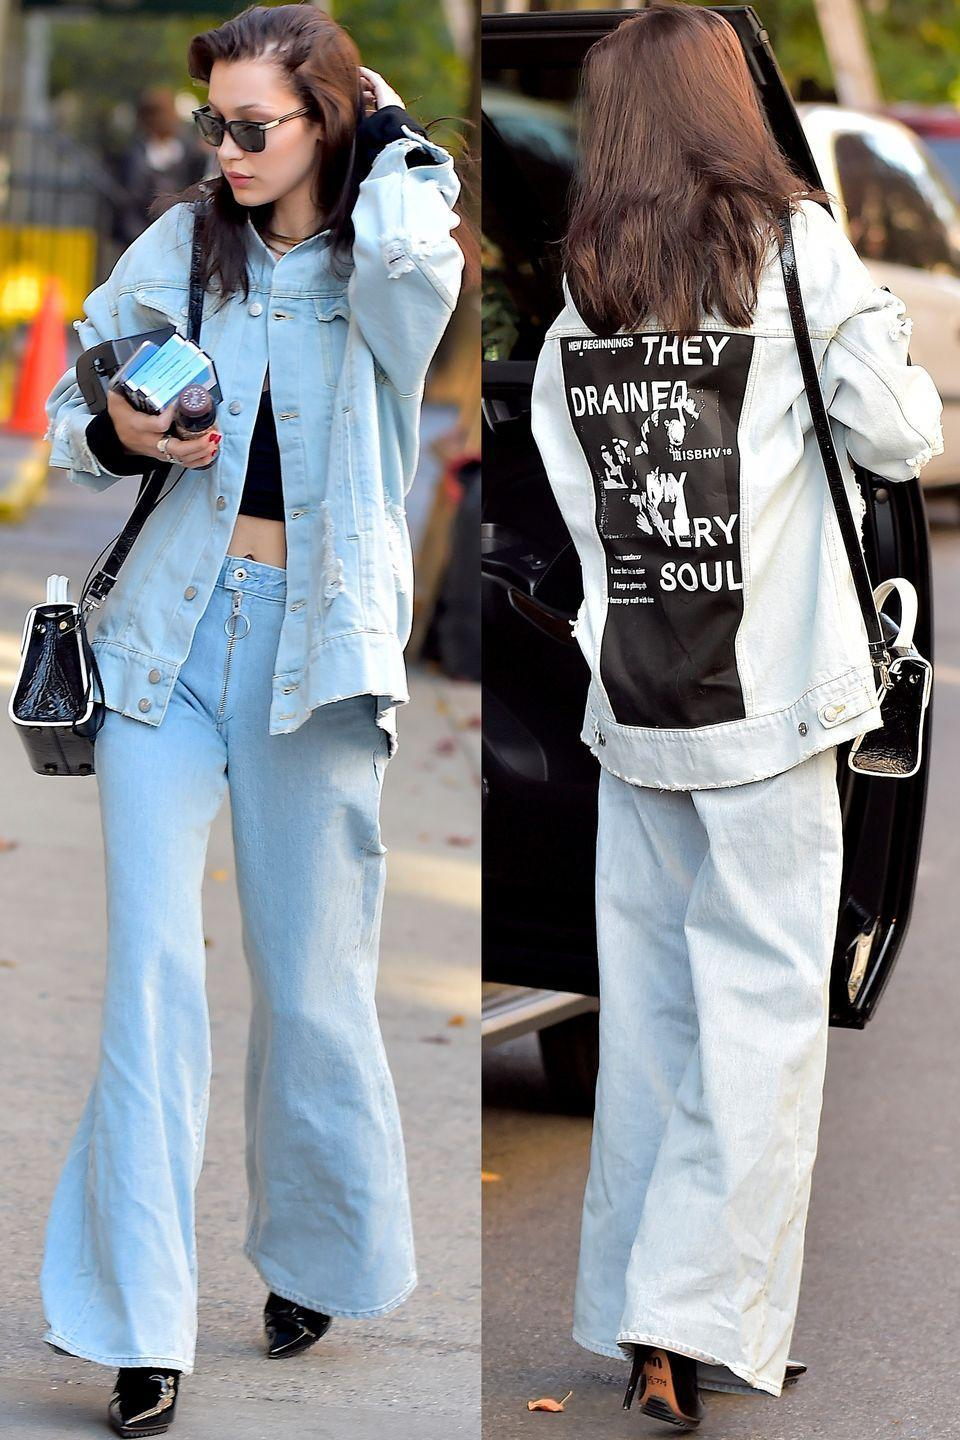 <p>In a denim jacket by Misbhv, wide-leg jeans, pointed-toe Givenchy boots, a black crop top, leather crossbody bag and sunglasses in NYC.</p>